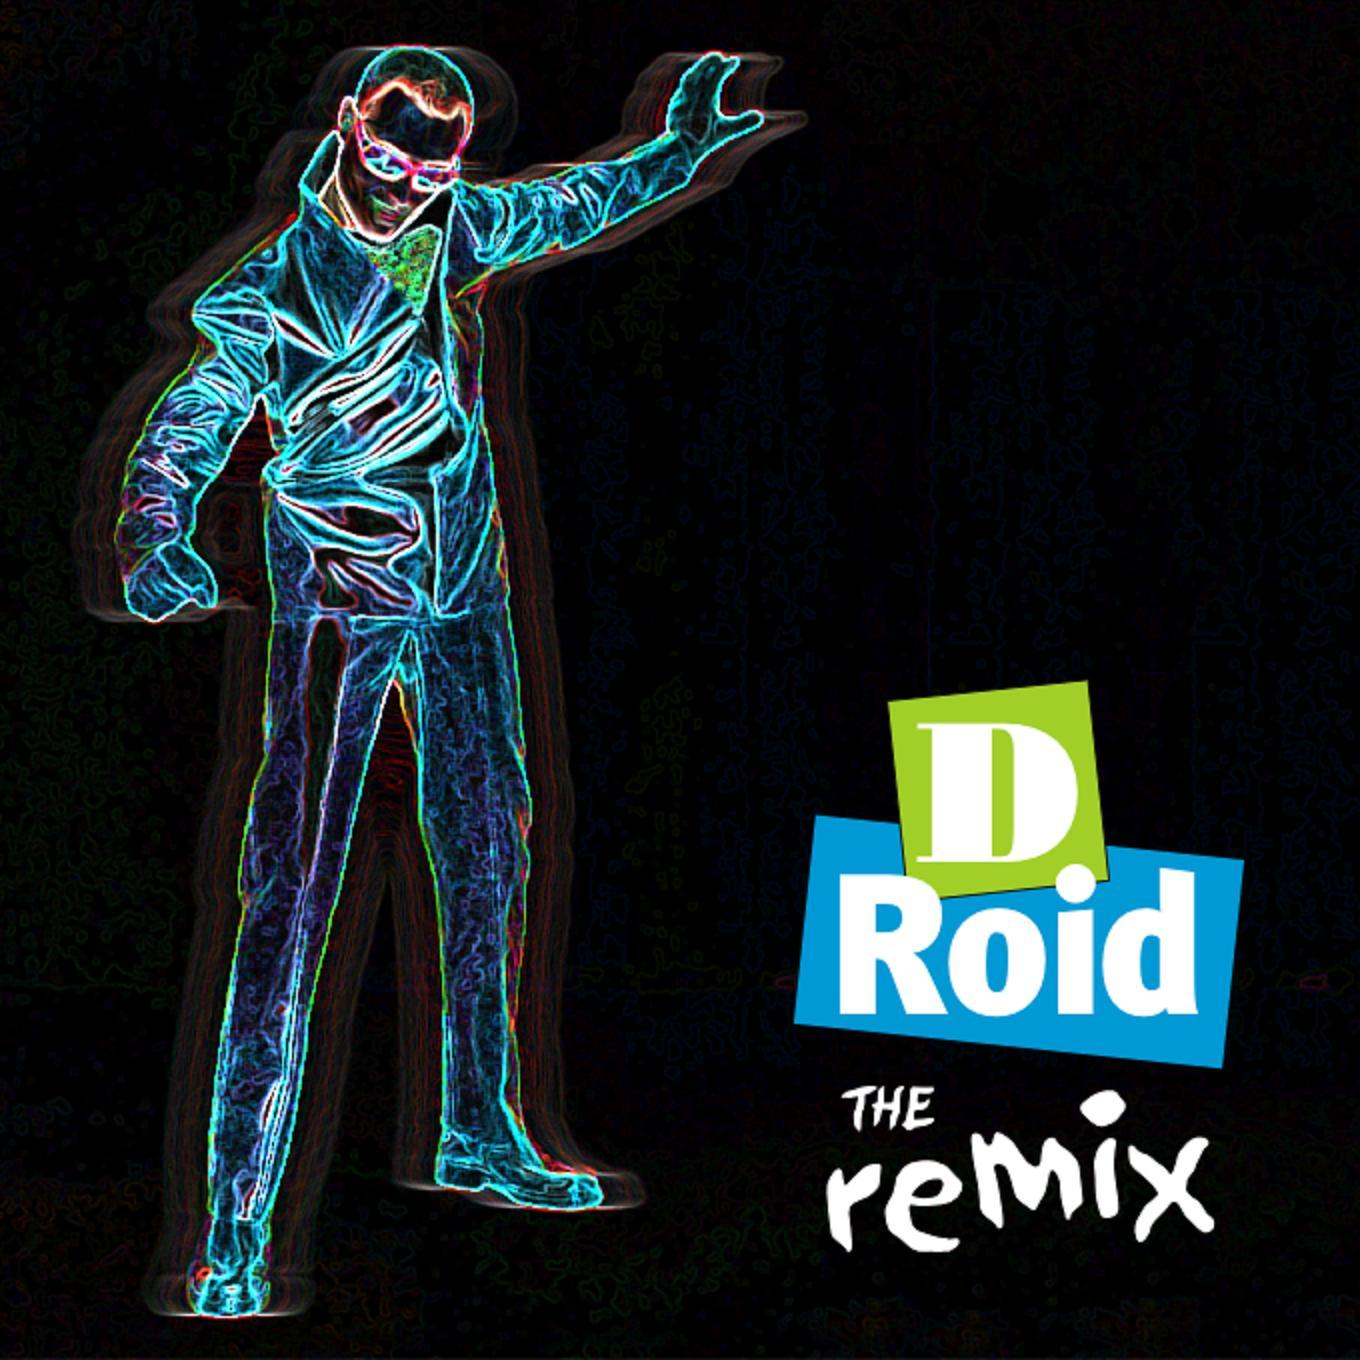 D-Roid the Remix